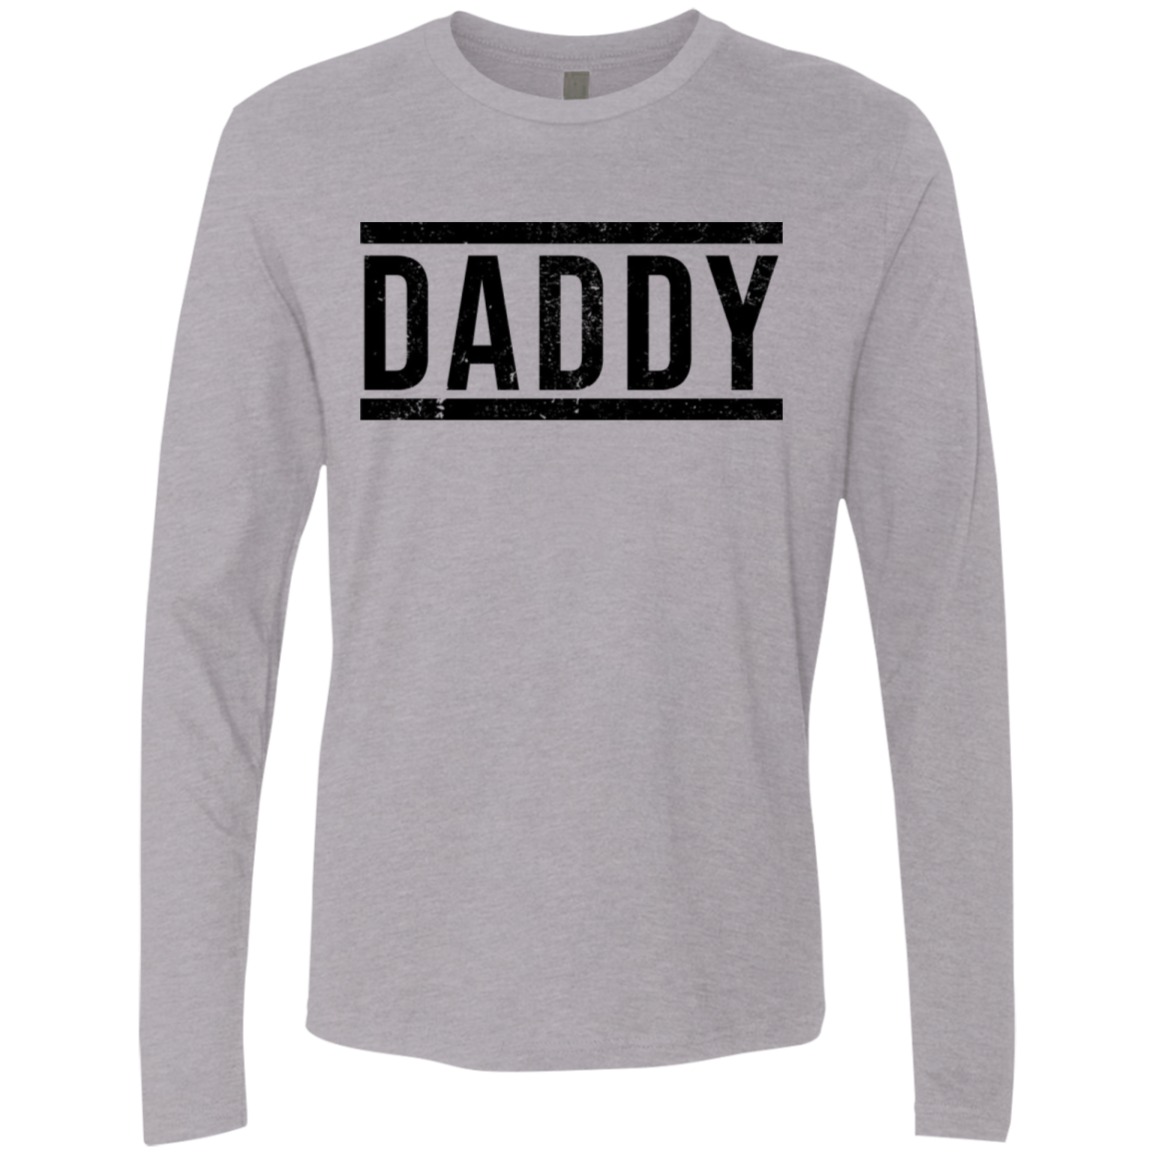 Daddy Men's Long Sleeve Tee